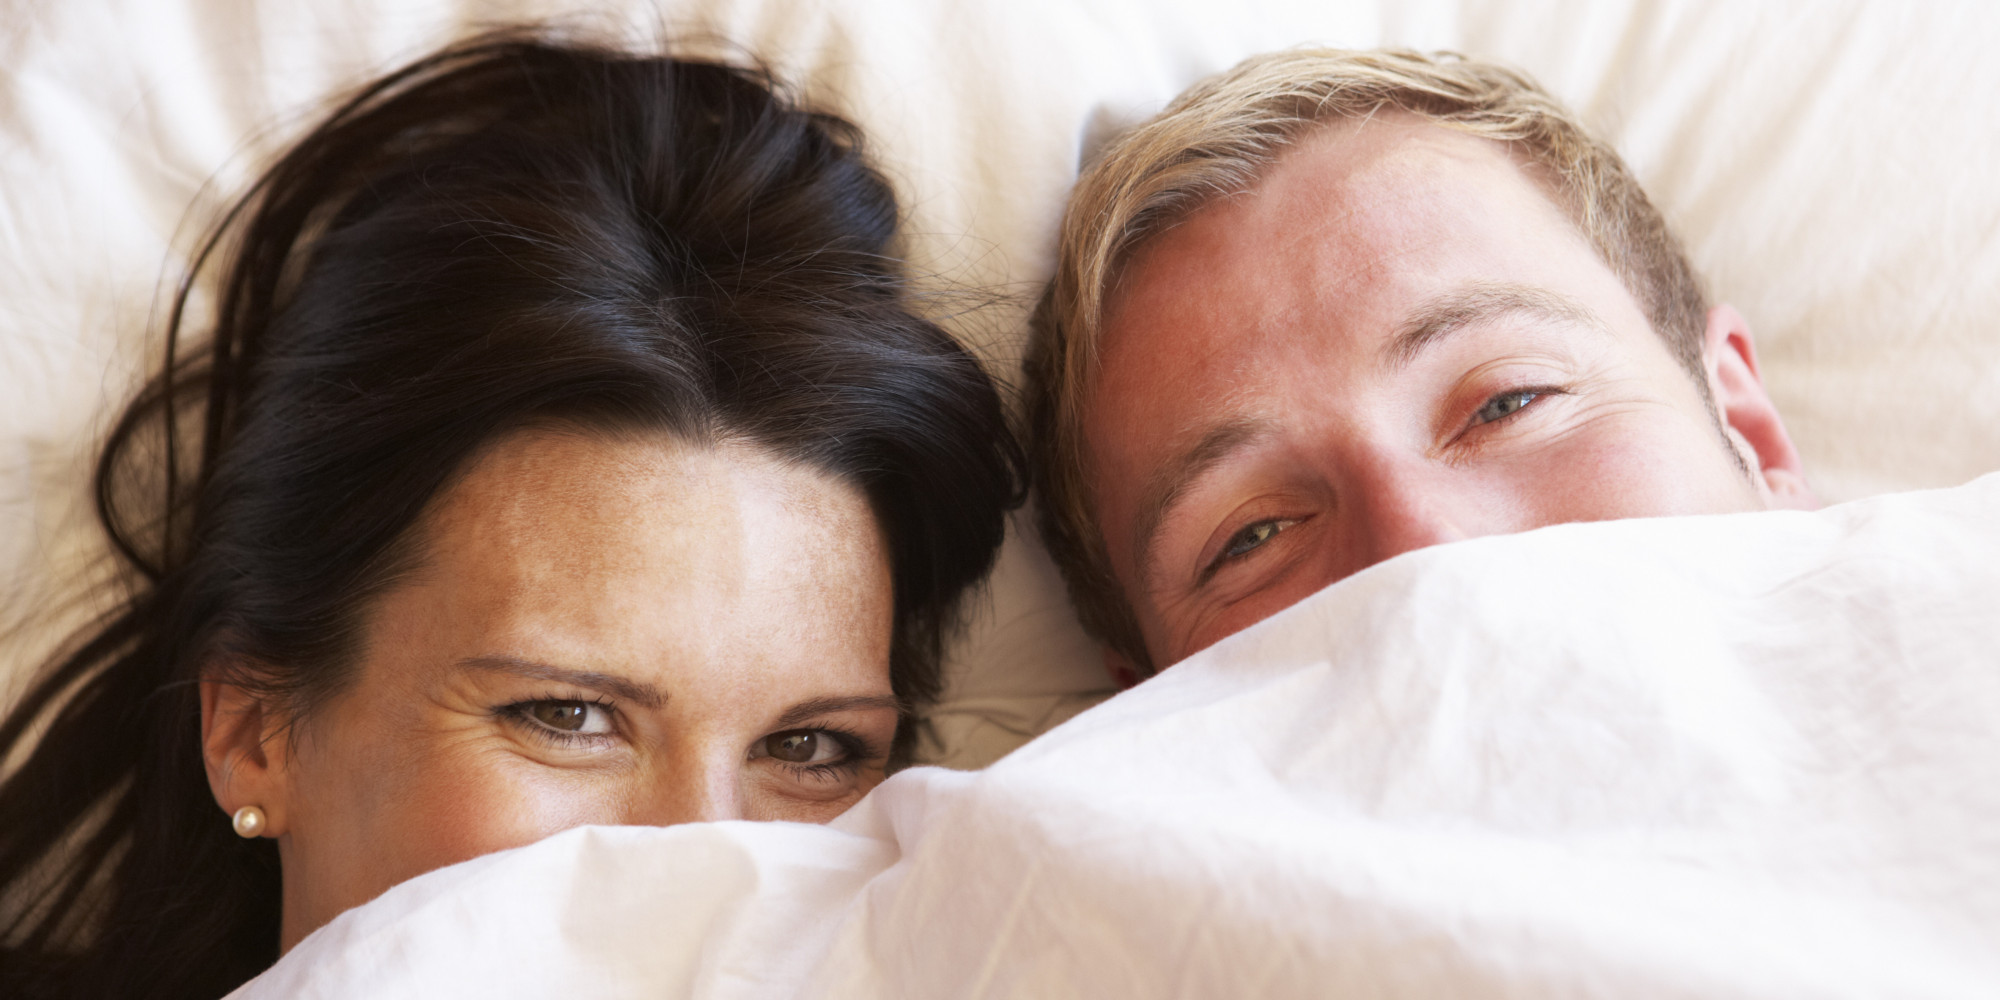 Ways to prevent pregnancy after sex - Things You